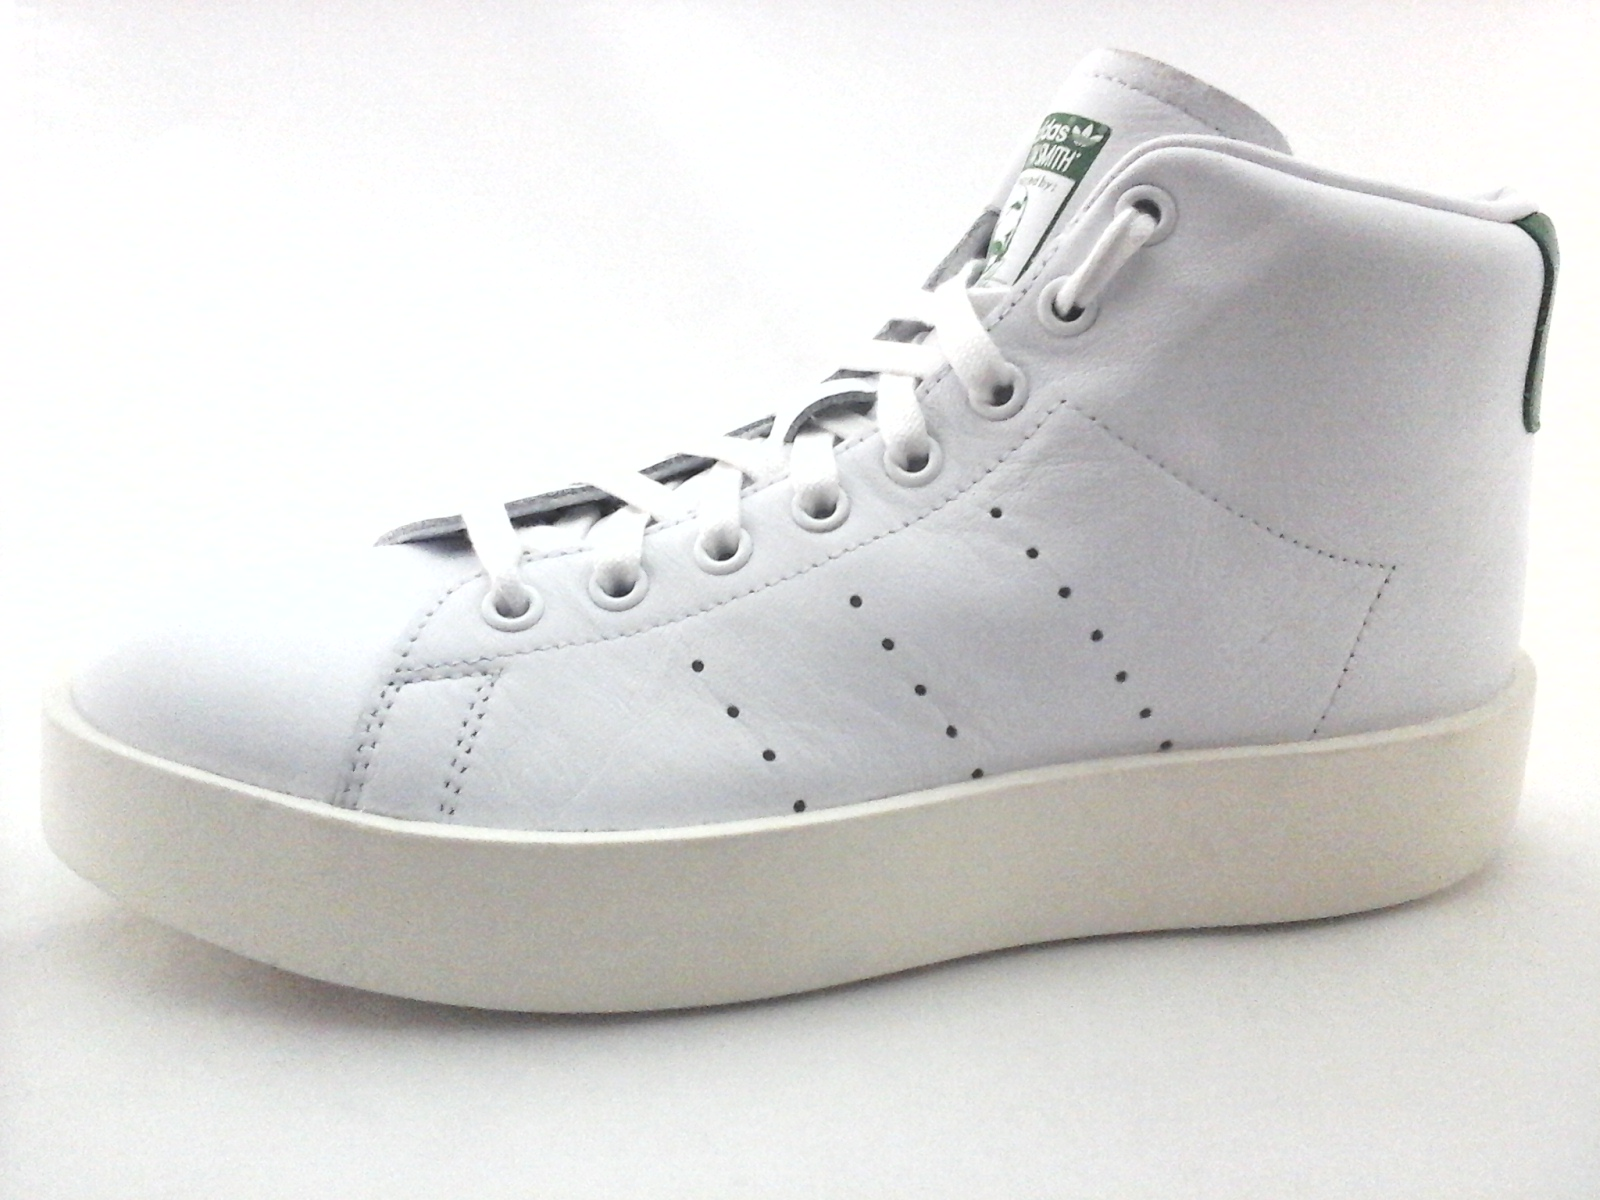 58a39e9edb0 ADIDAS Stan Smith Platform Bold Mid Shoes White Green Leather BY9663 Women s  New